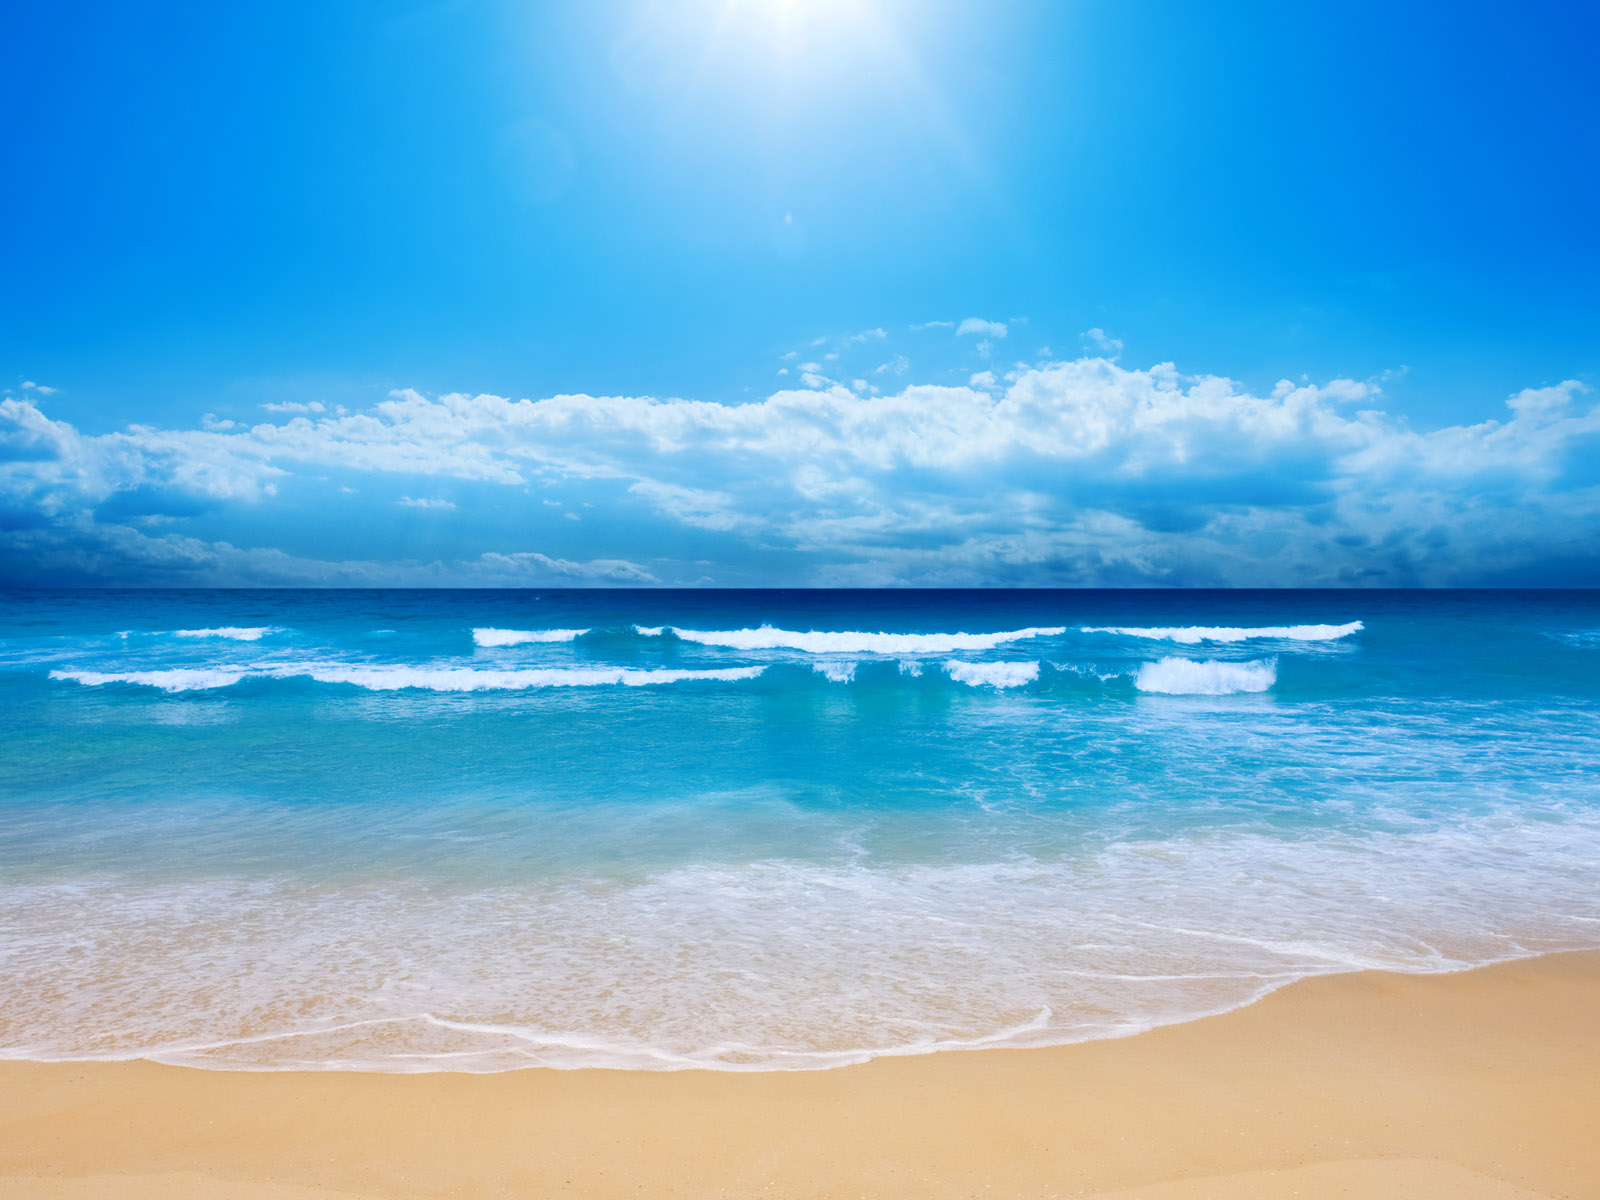 A Place For HD Wallpapers Desktop Wallpapers Beach 1600x1200